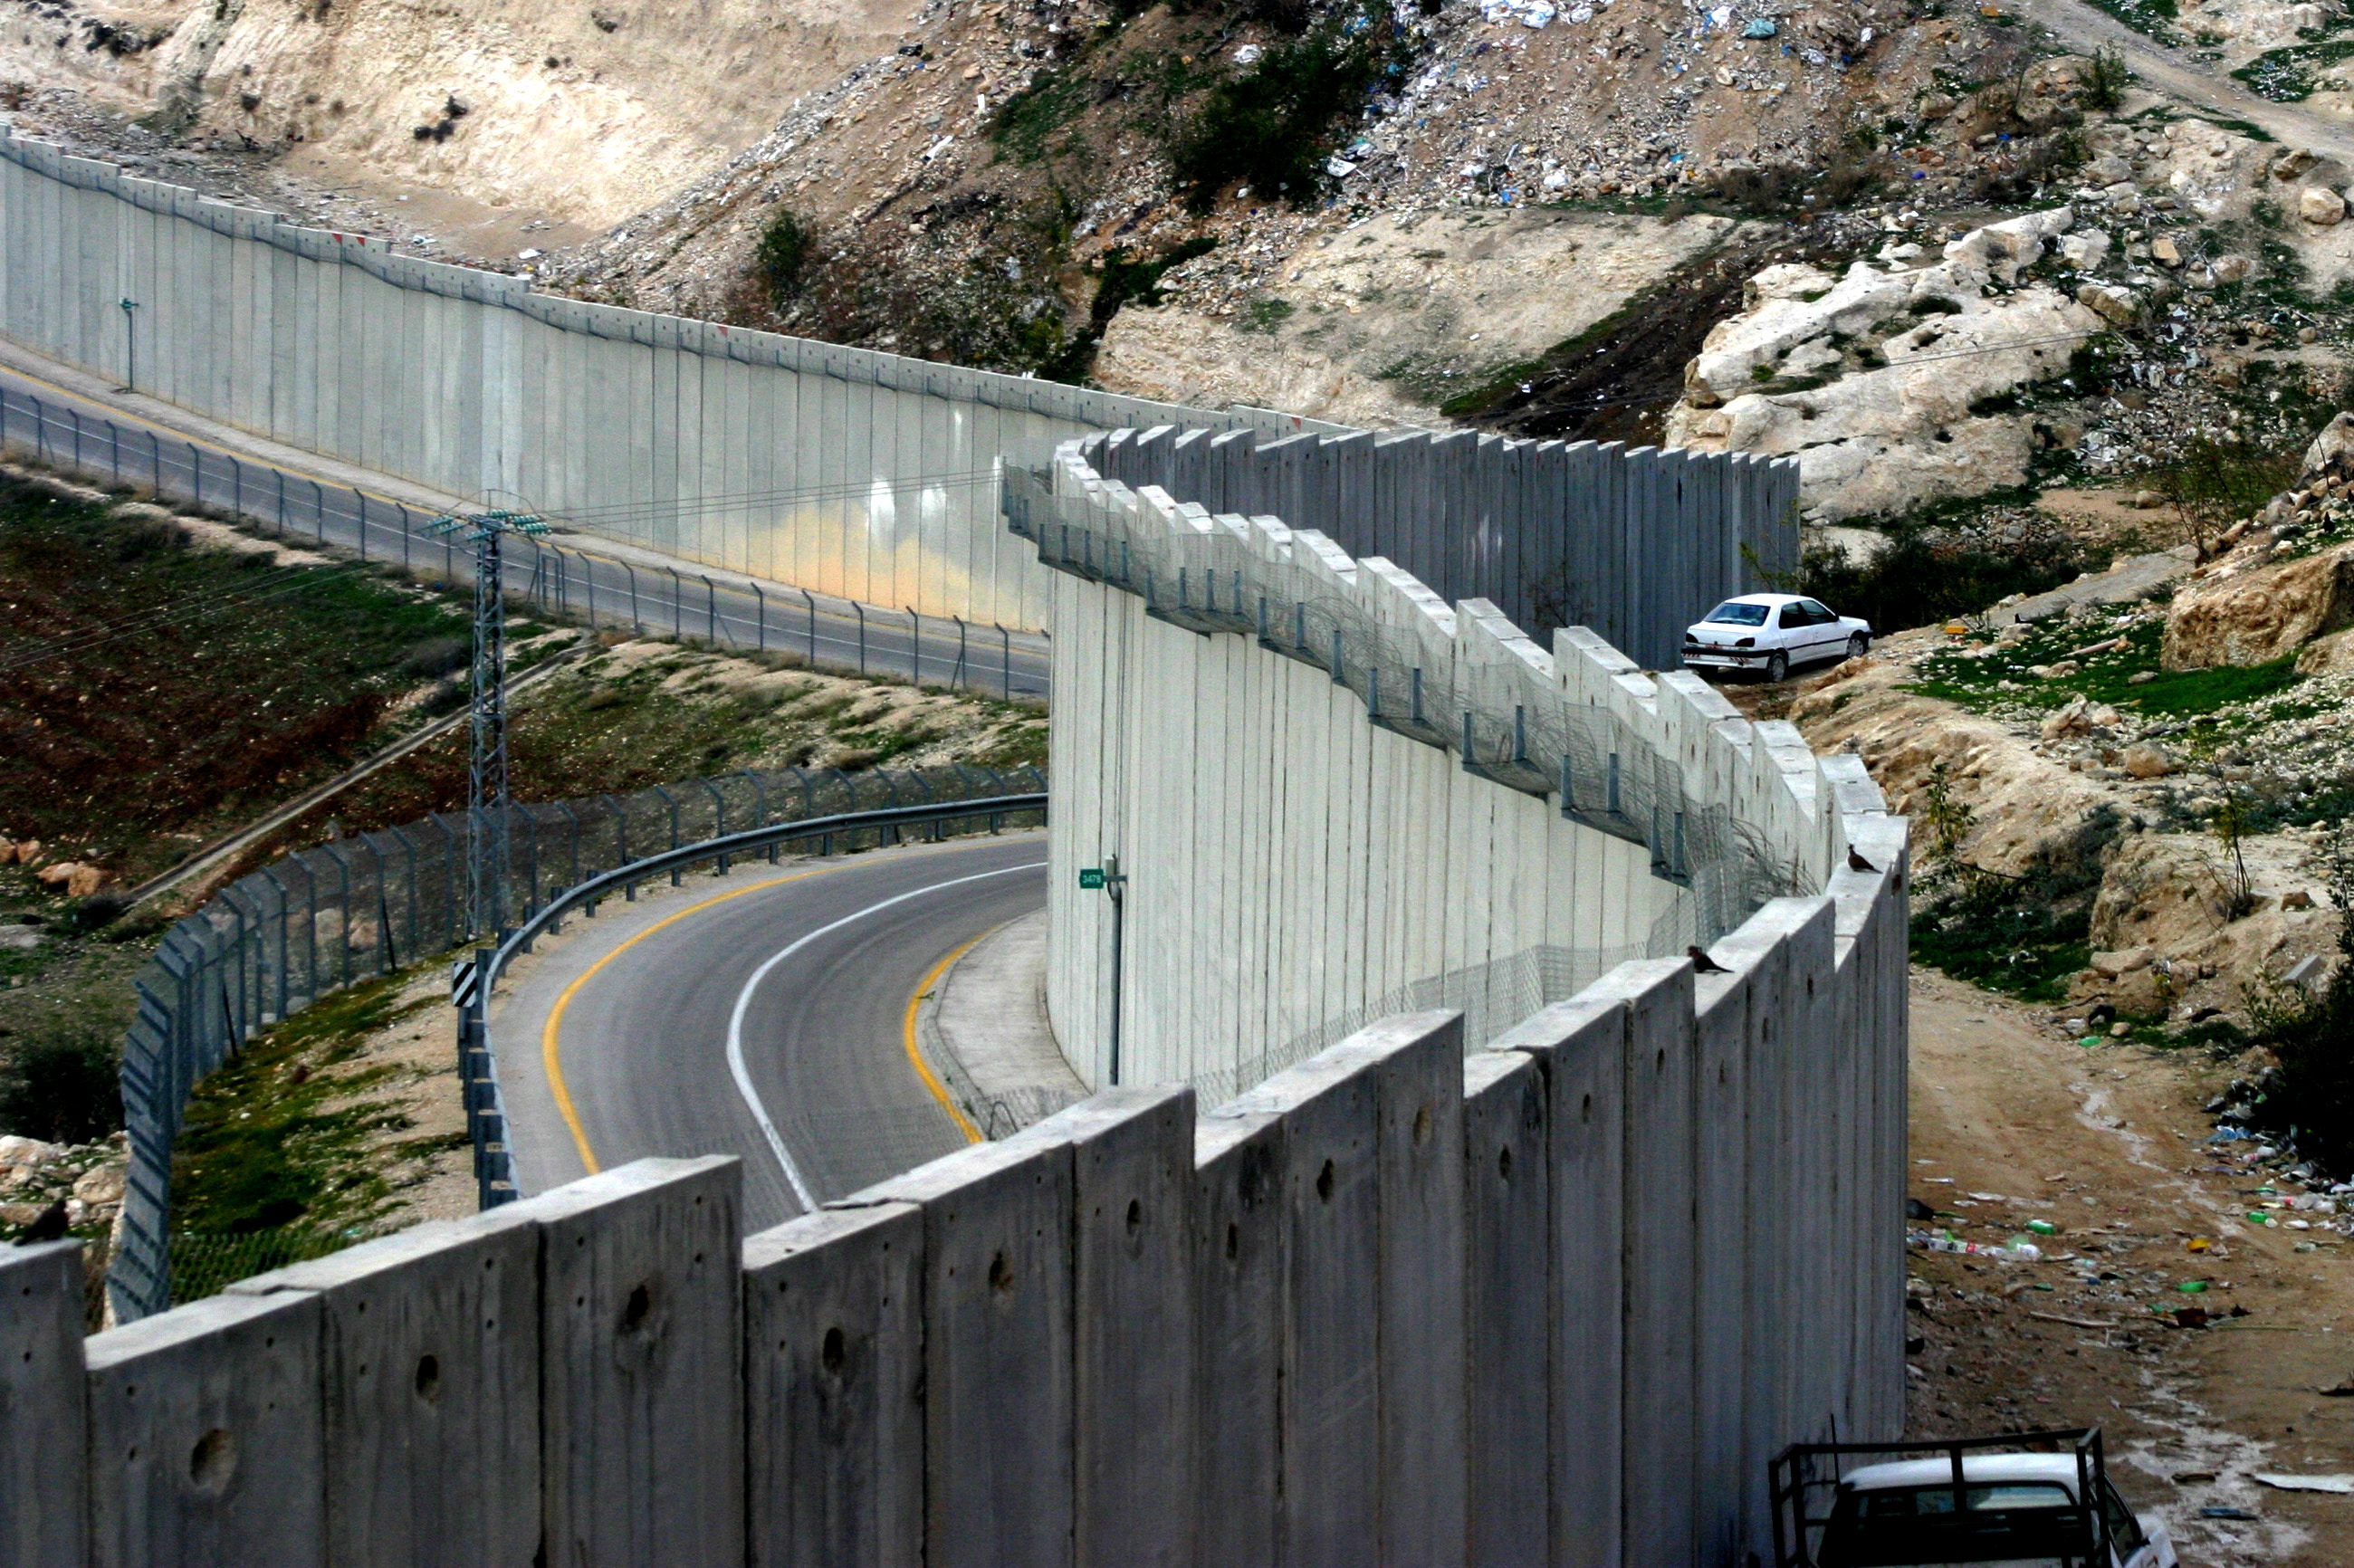 13 Images Showing The Extent Of Israel's Palestinian Apartheid